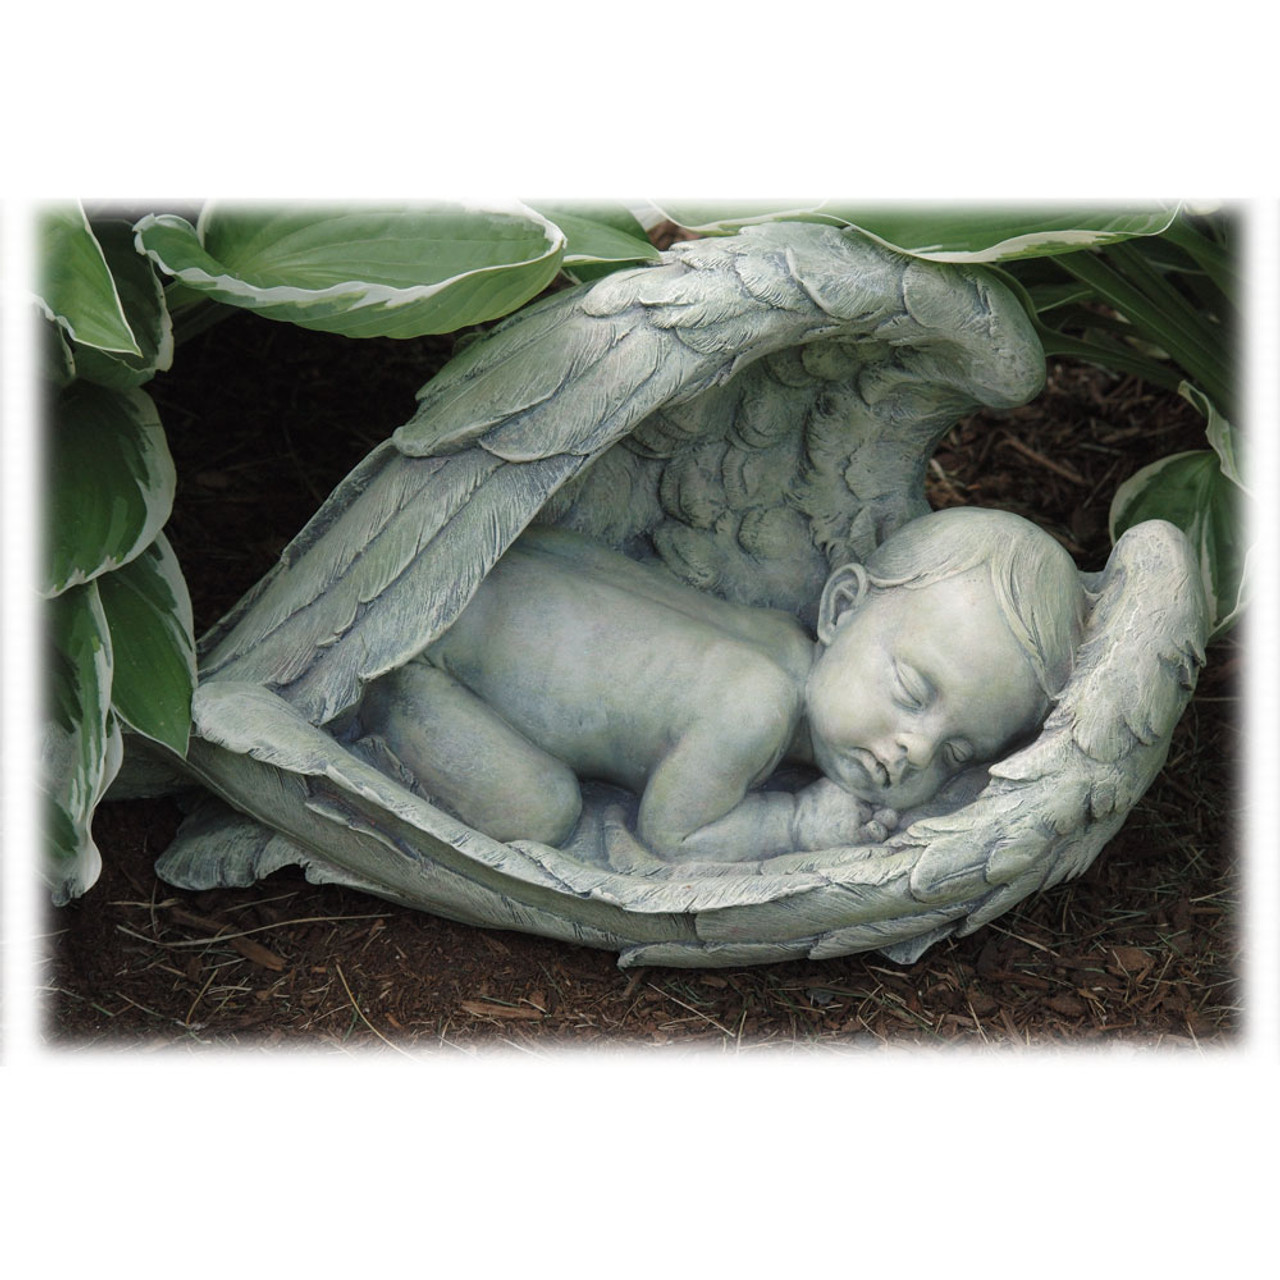 Sleeping Baby, Wrapped in Angel Wings Statue